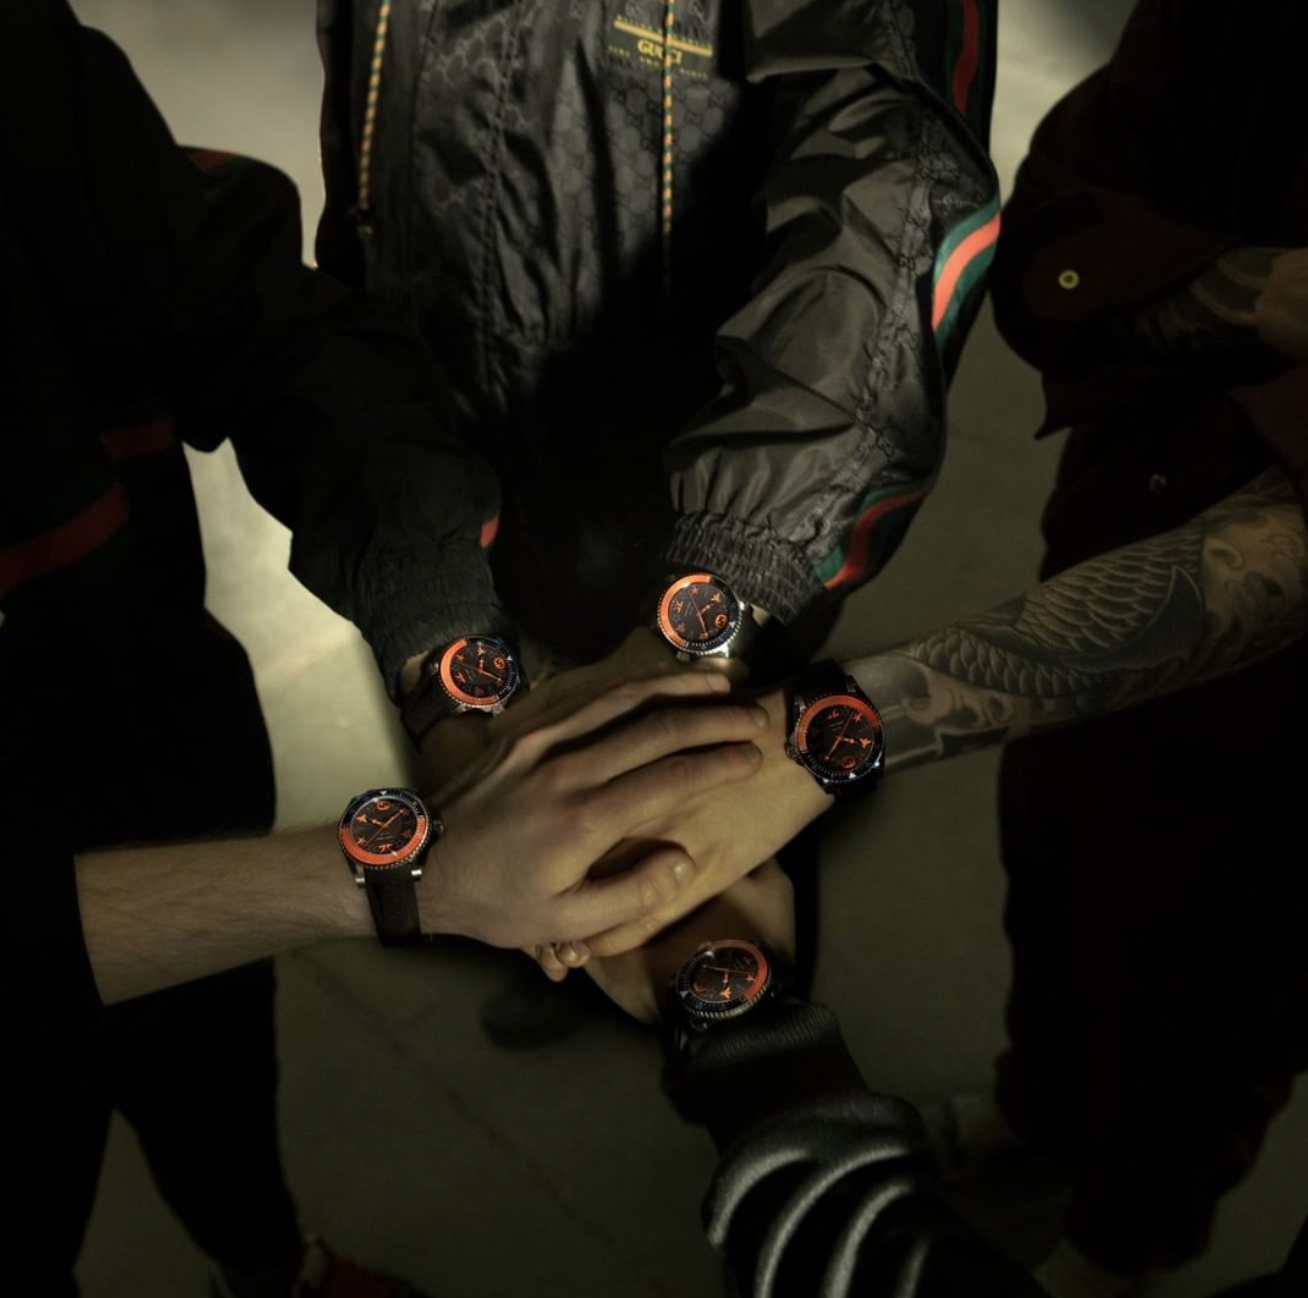 Gucci Fnatic dive watch gamer watch esport